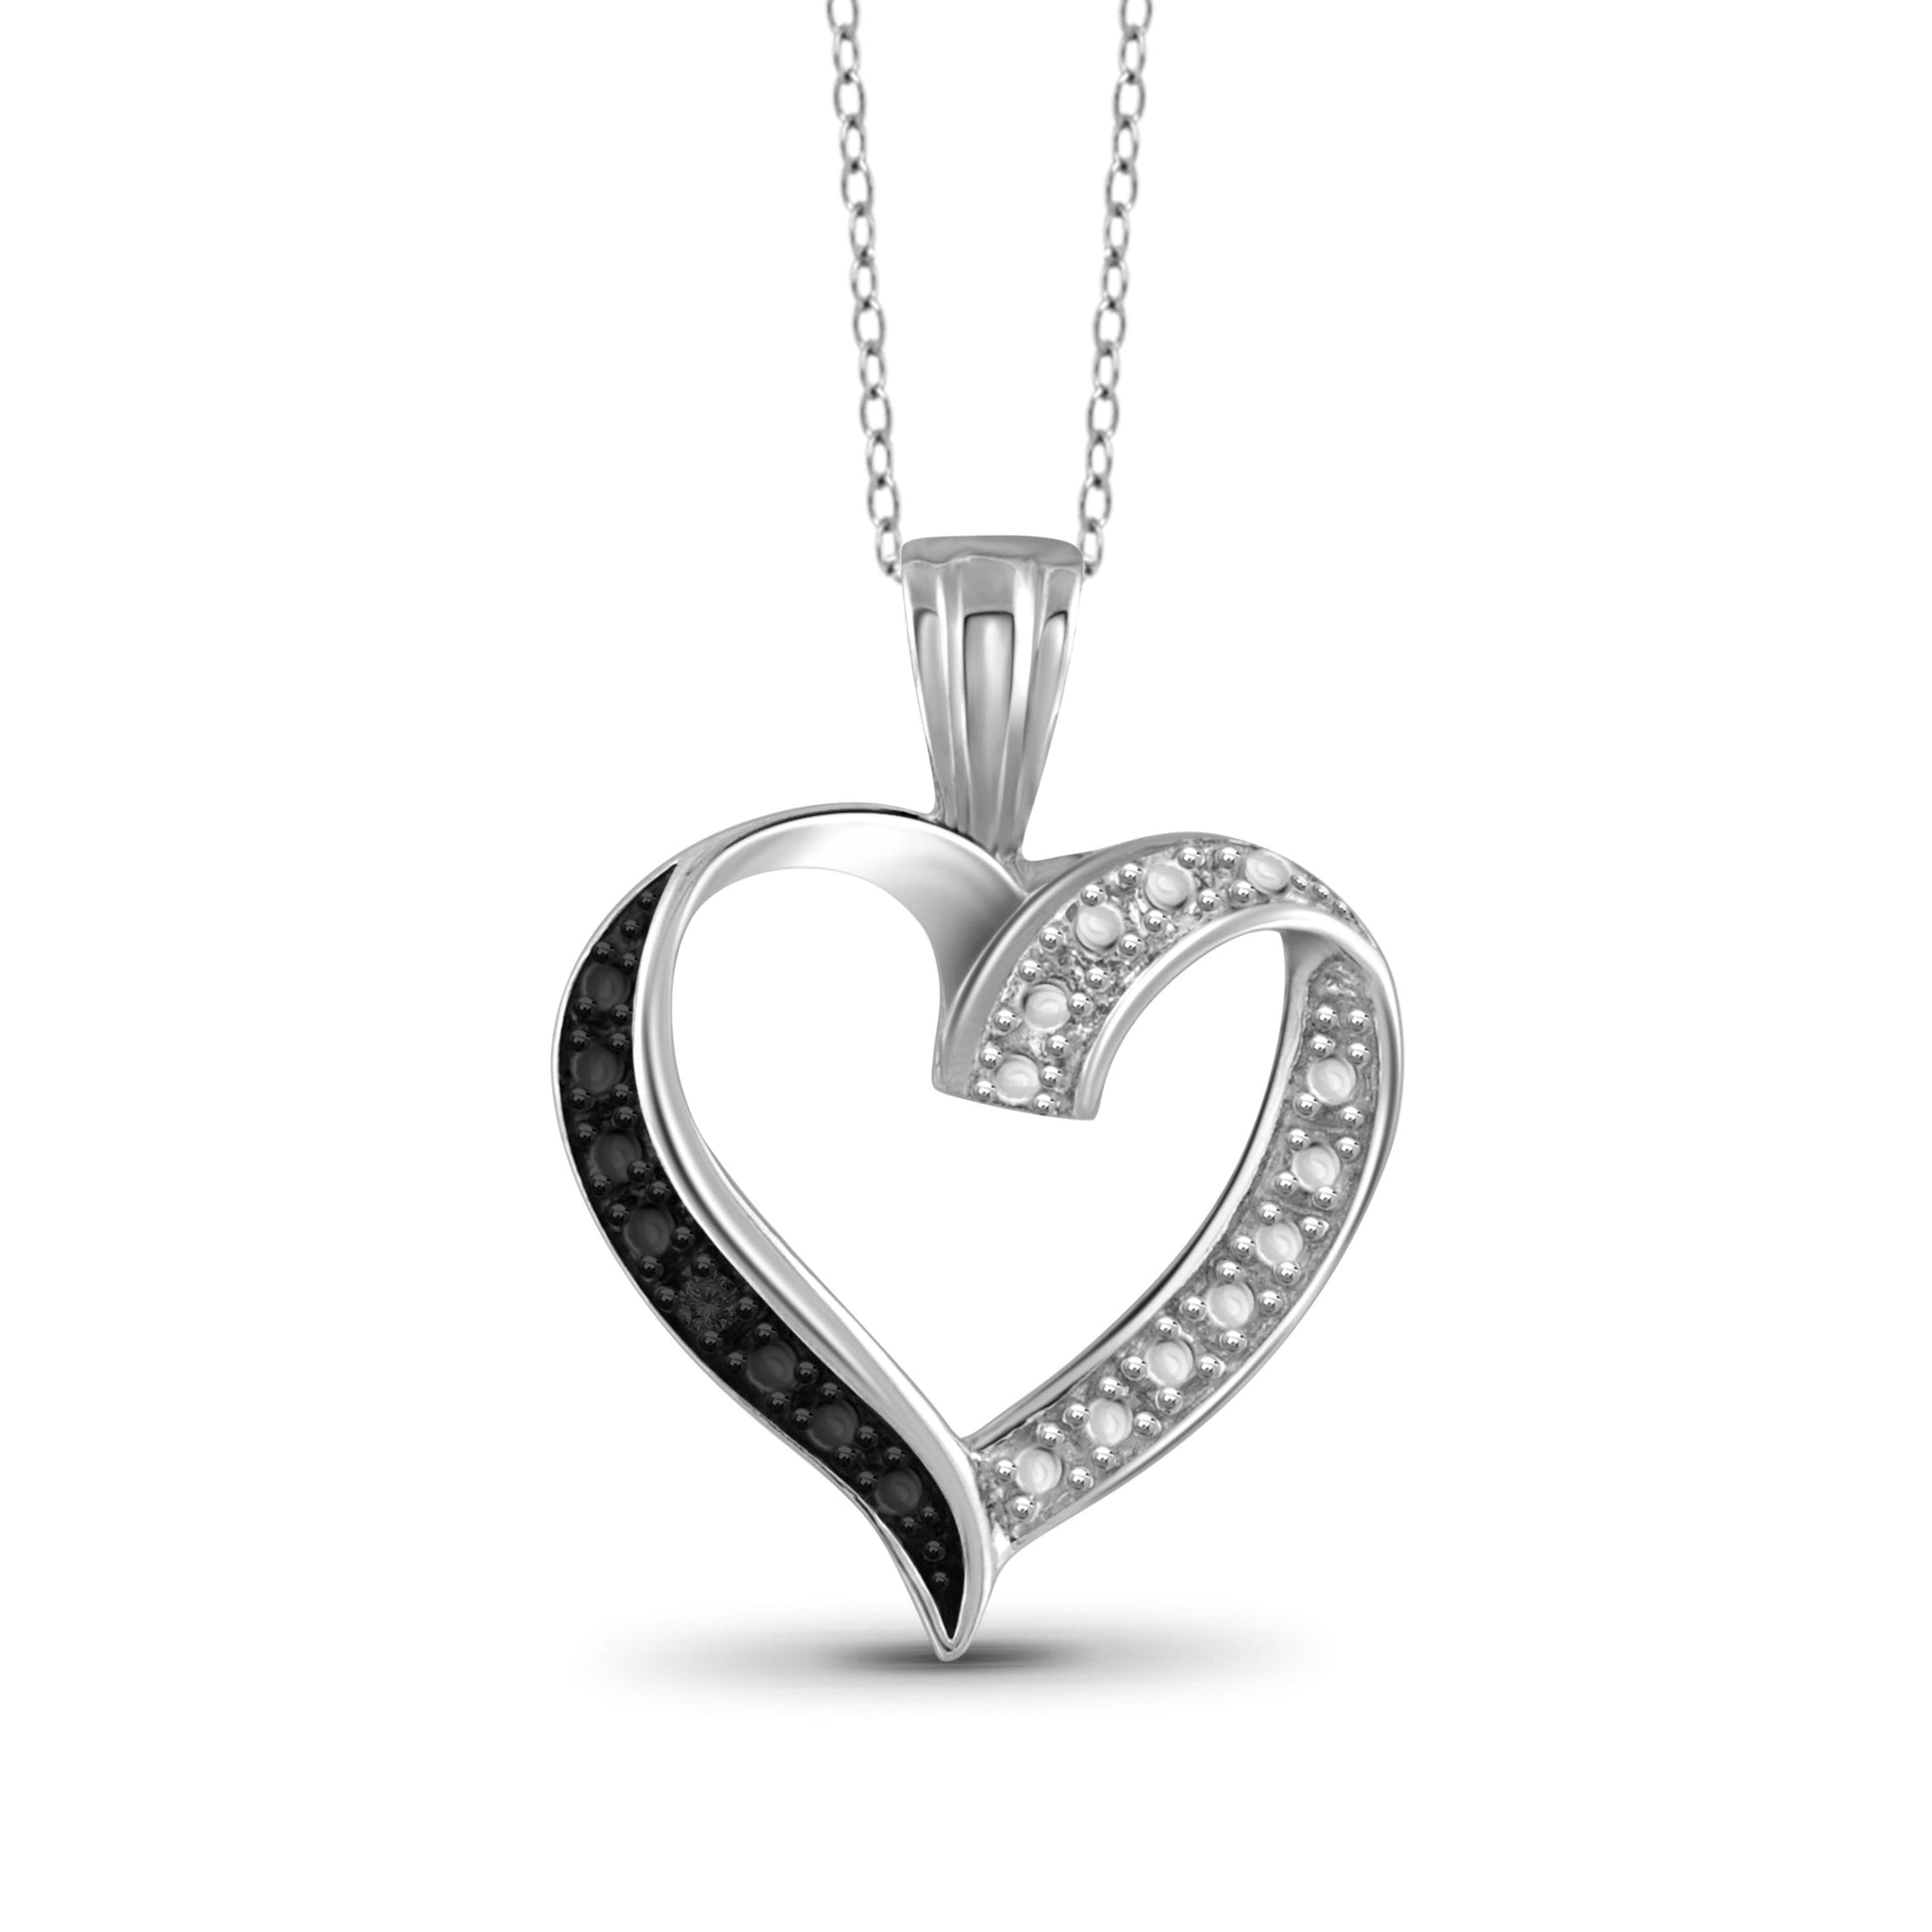 JewelonFire Black Diamond Accent Sterling Silver Open Heart Pendant - Assorted Colors